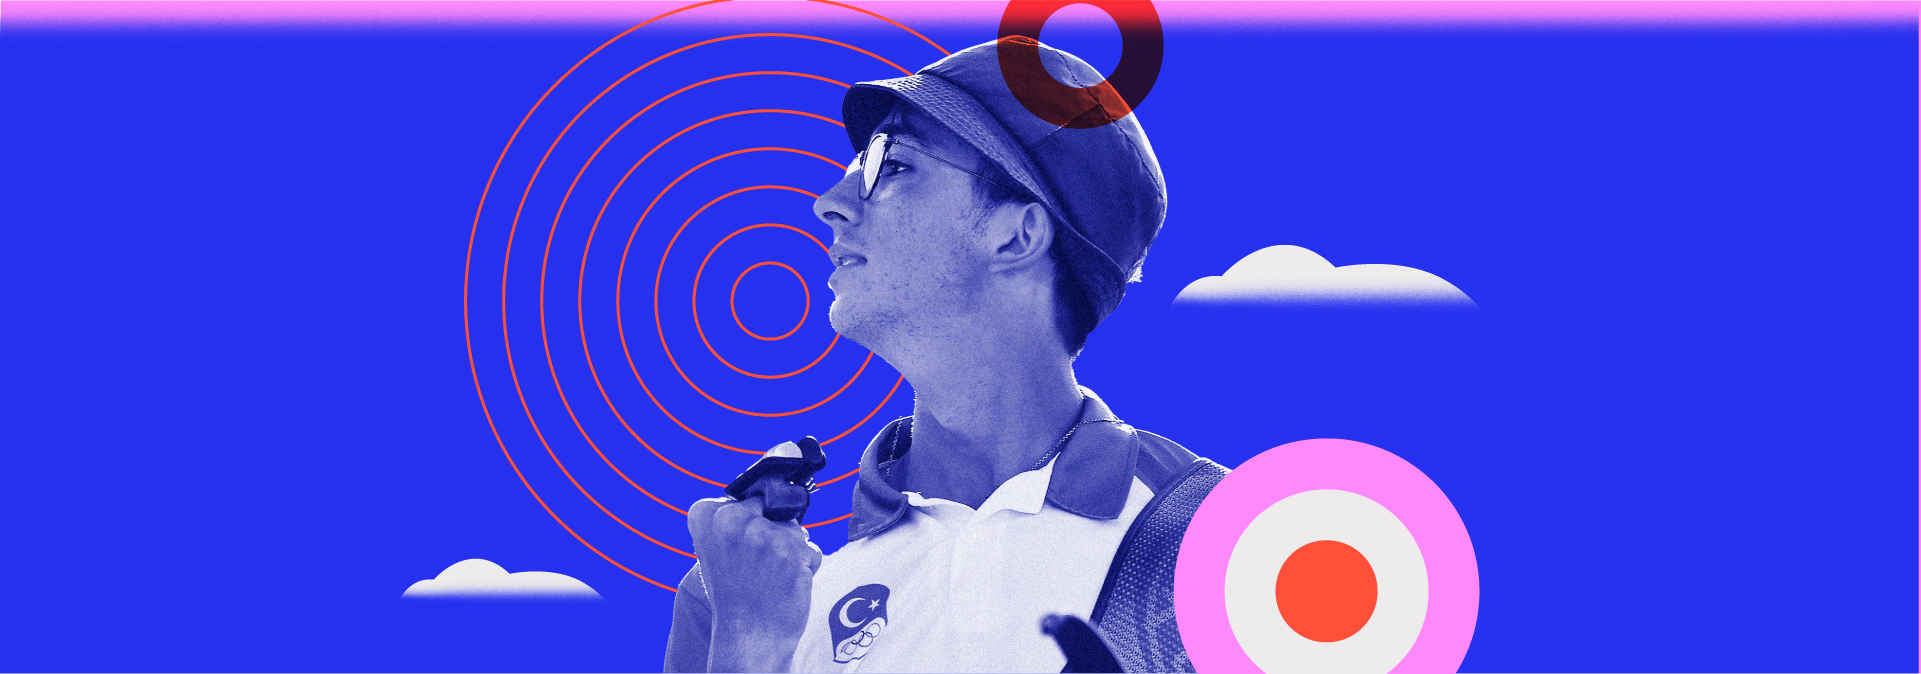 3 Things an Olympic Medal Winner 22-Year-Old Archer Can Teach Us About Employee Development